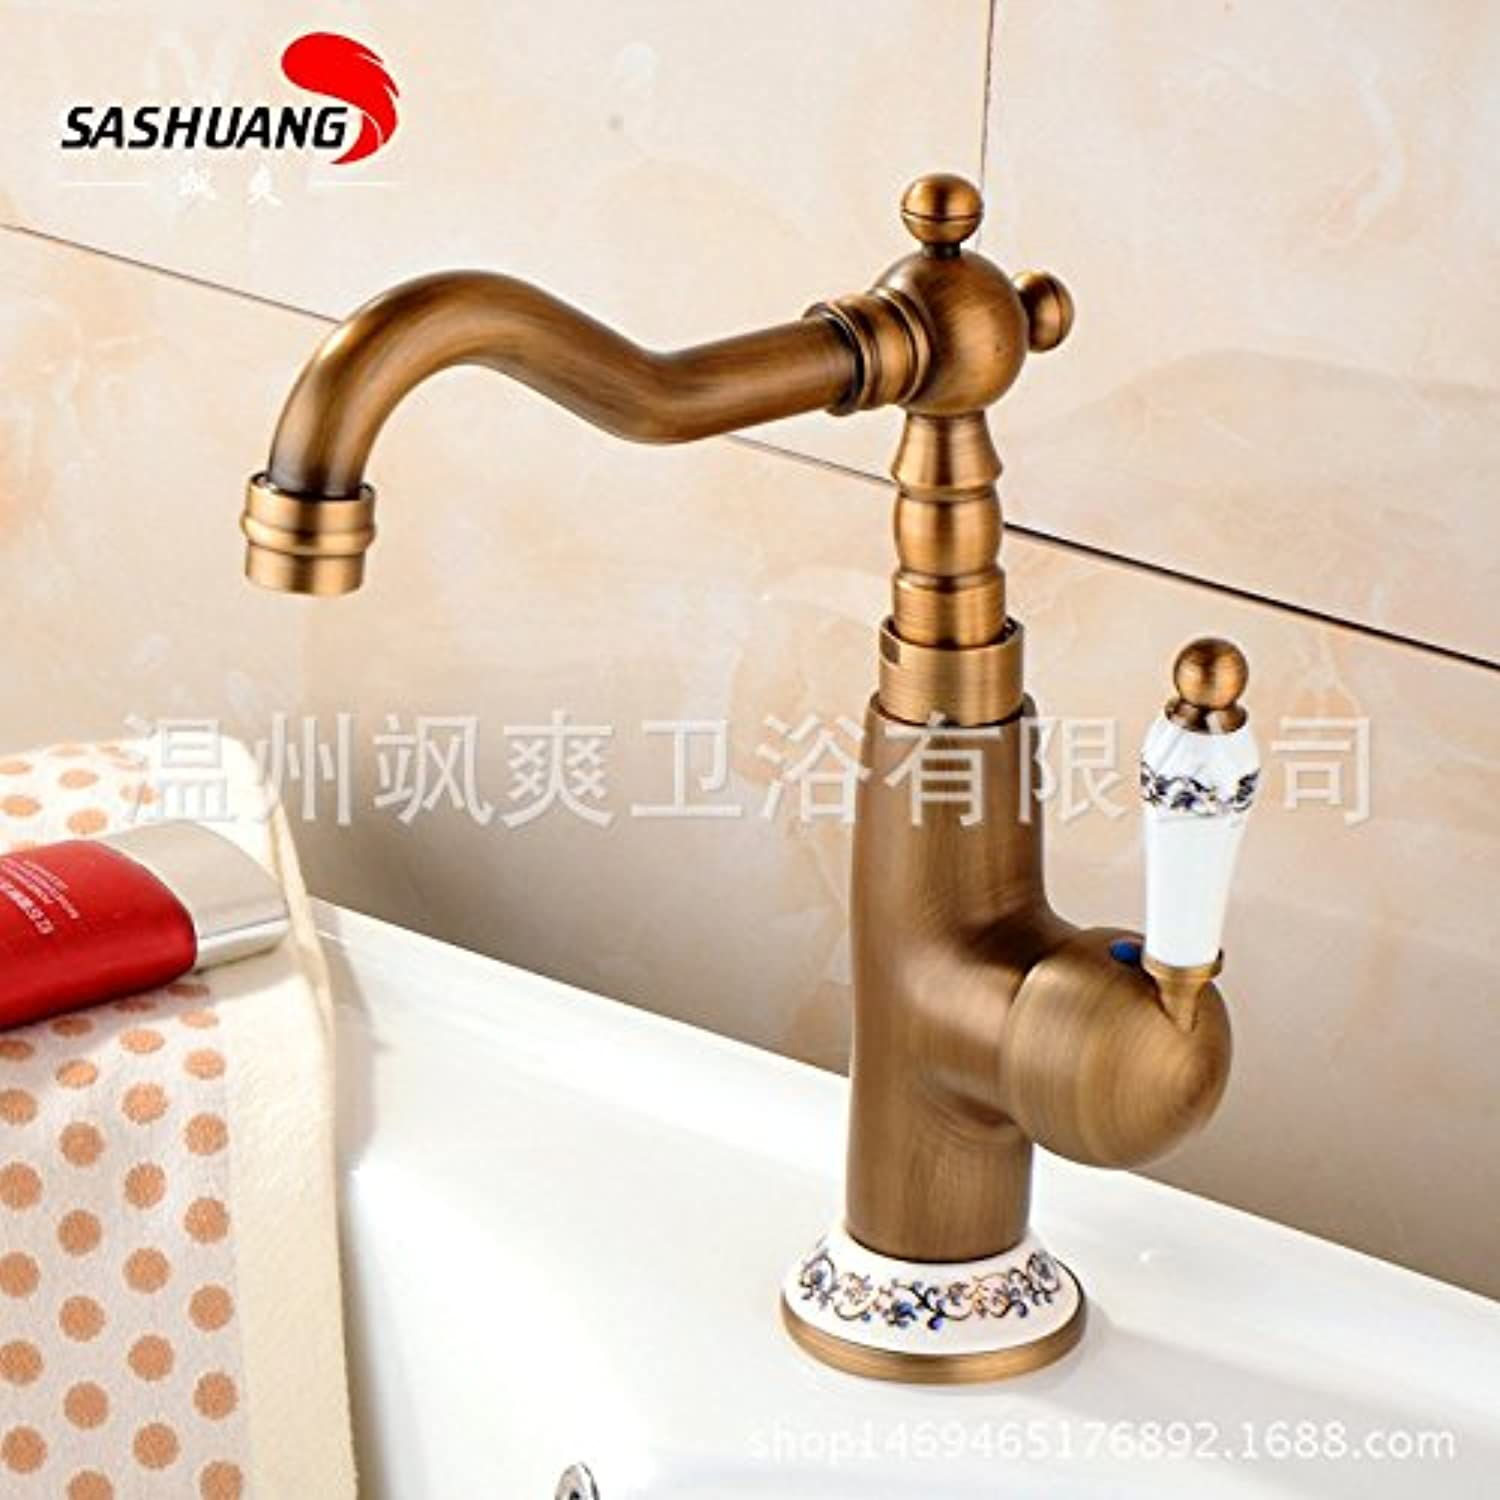 SADASD European Style Bathroom Basin Faucet Copper Antique bluee and White Porcelain Washbasin Sink Taps Ceramic Valve Single Hole Single Handle Hot and Cold Mixer Tap With G1 2 Hose